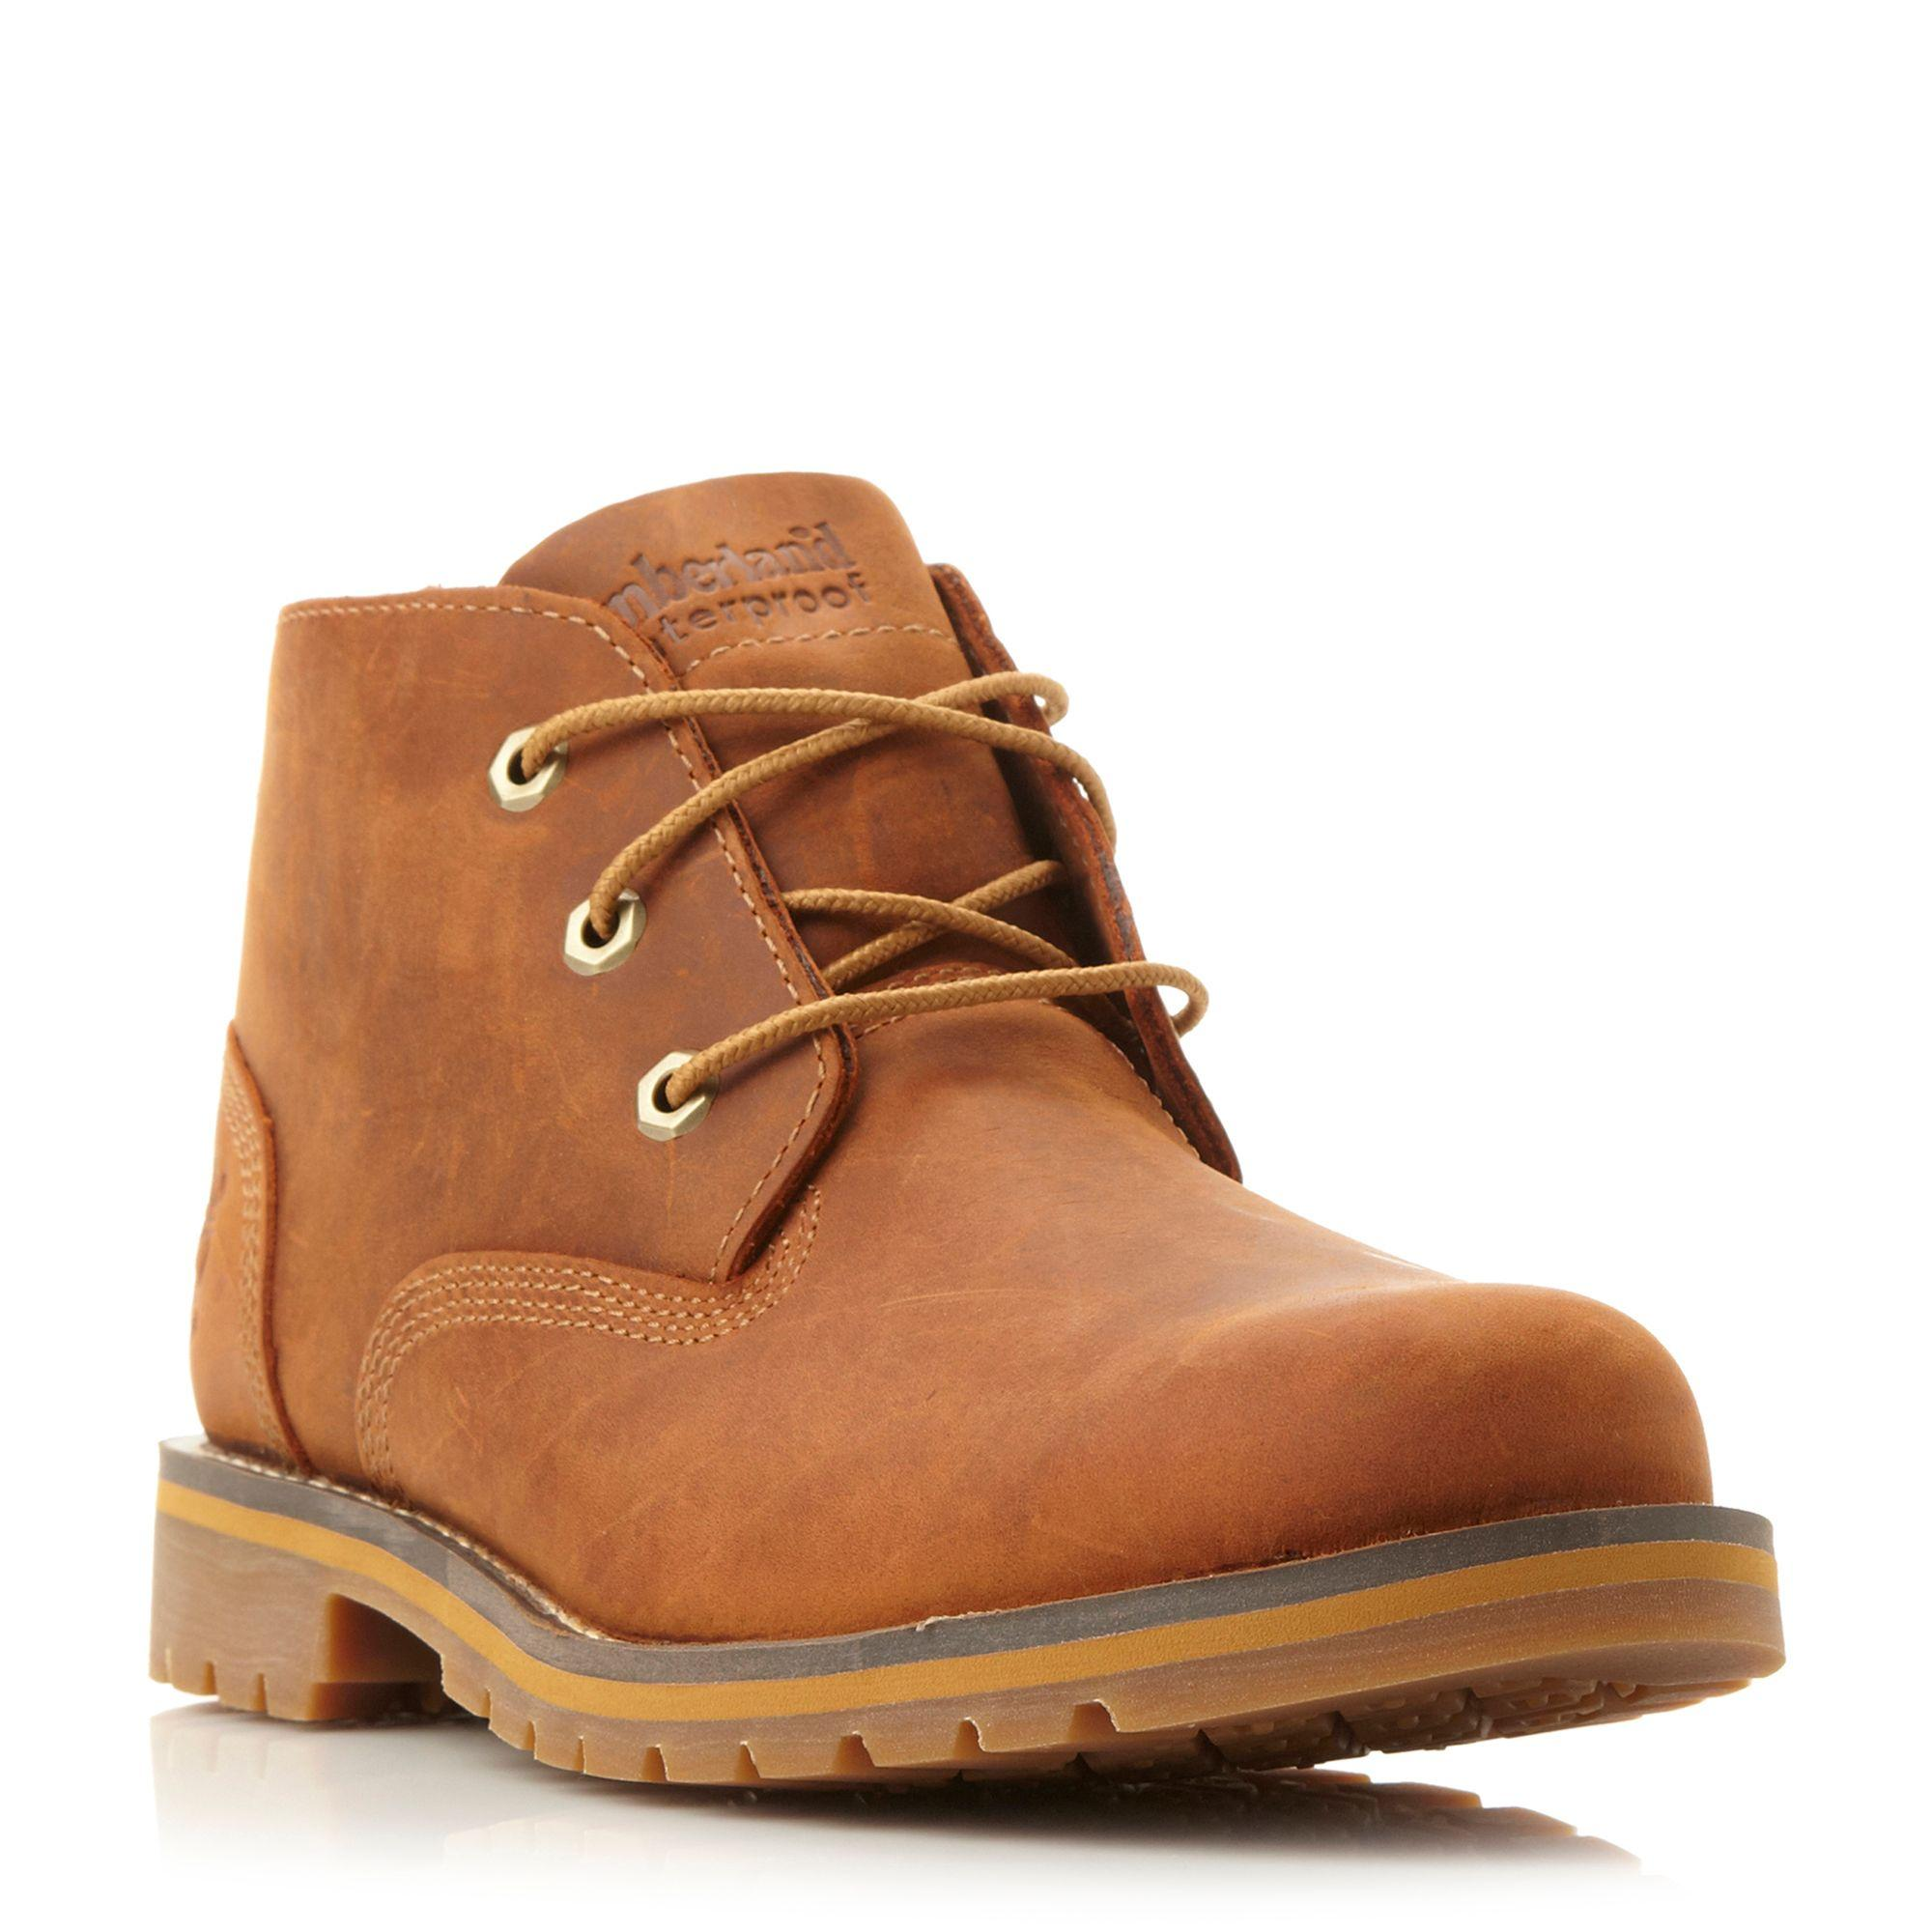 men's chukka boots Timberland® men's chukkas have become some of our most popular footwear. Try a pair of our men's chukka boots for the ultimate smooth ride and a modern look that blends athletic styling with heritage details.